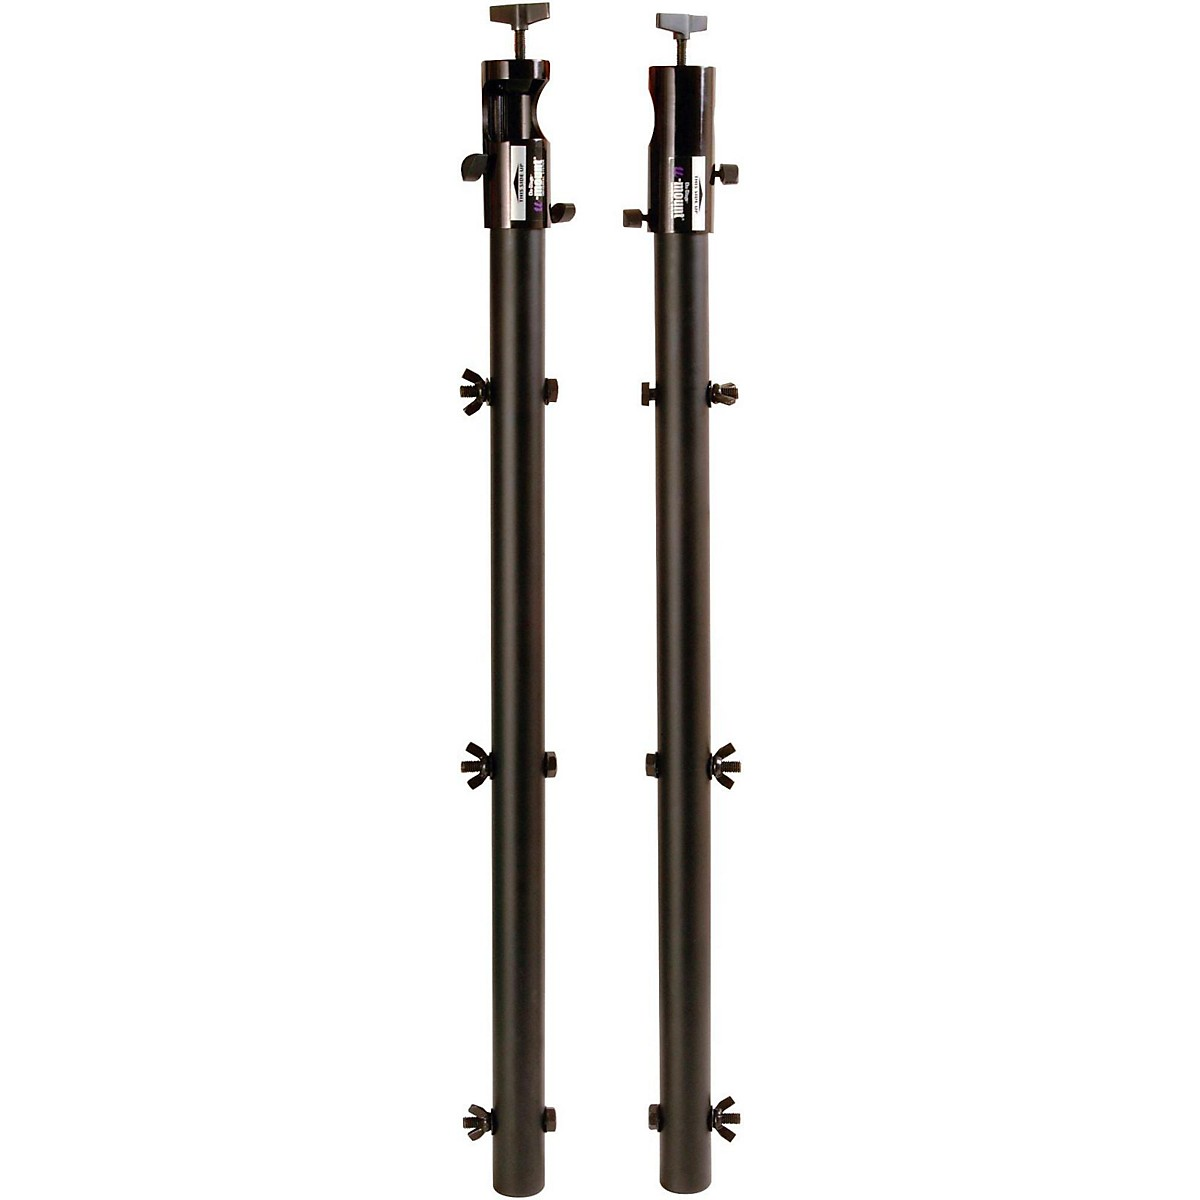 On-Stage U-Mount Lighting Stand Accessory Arms